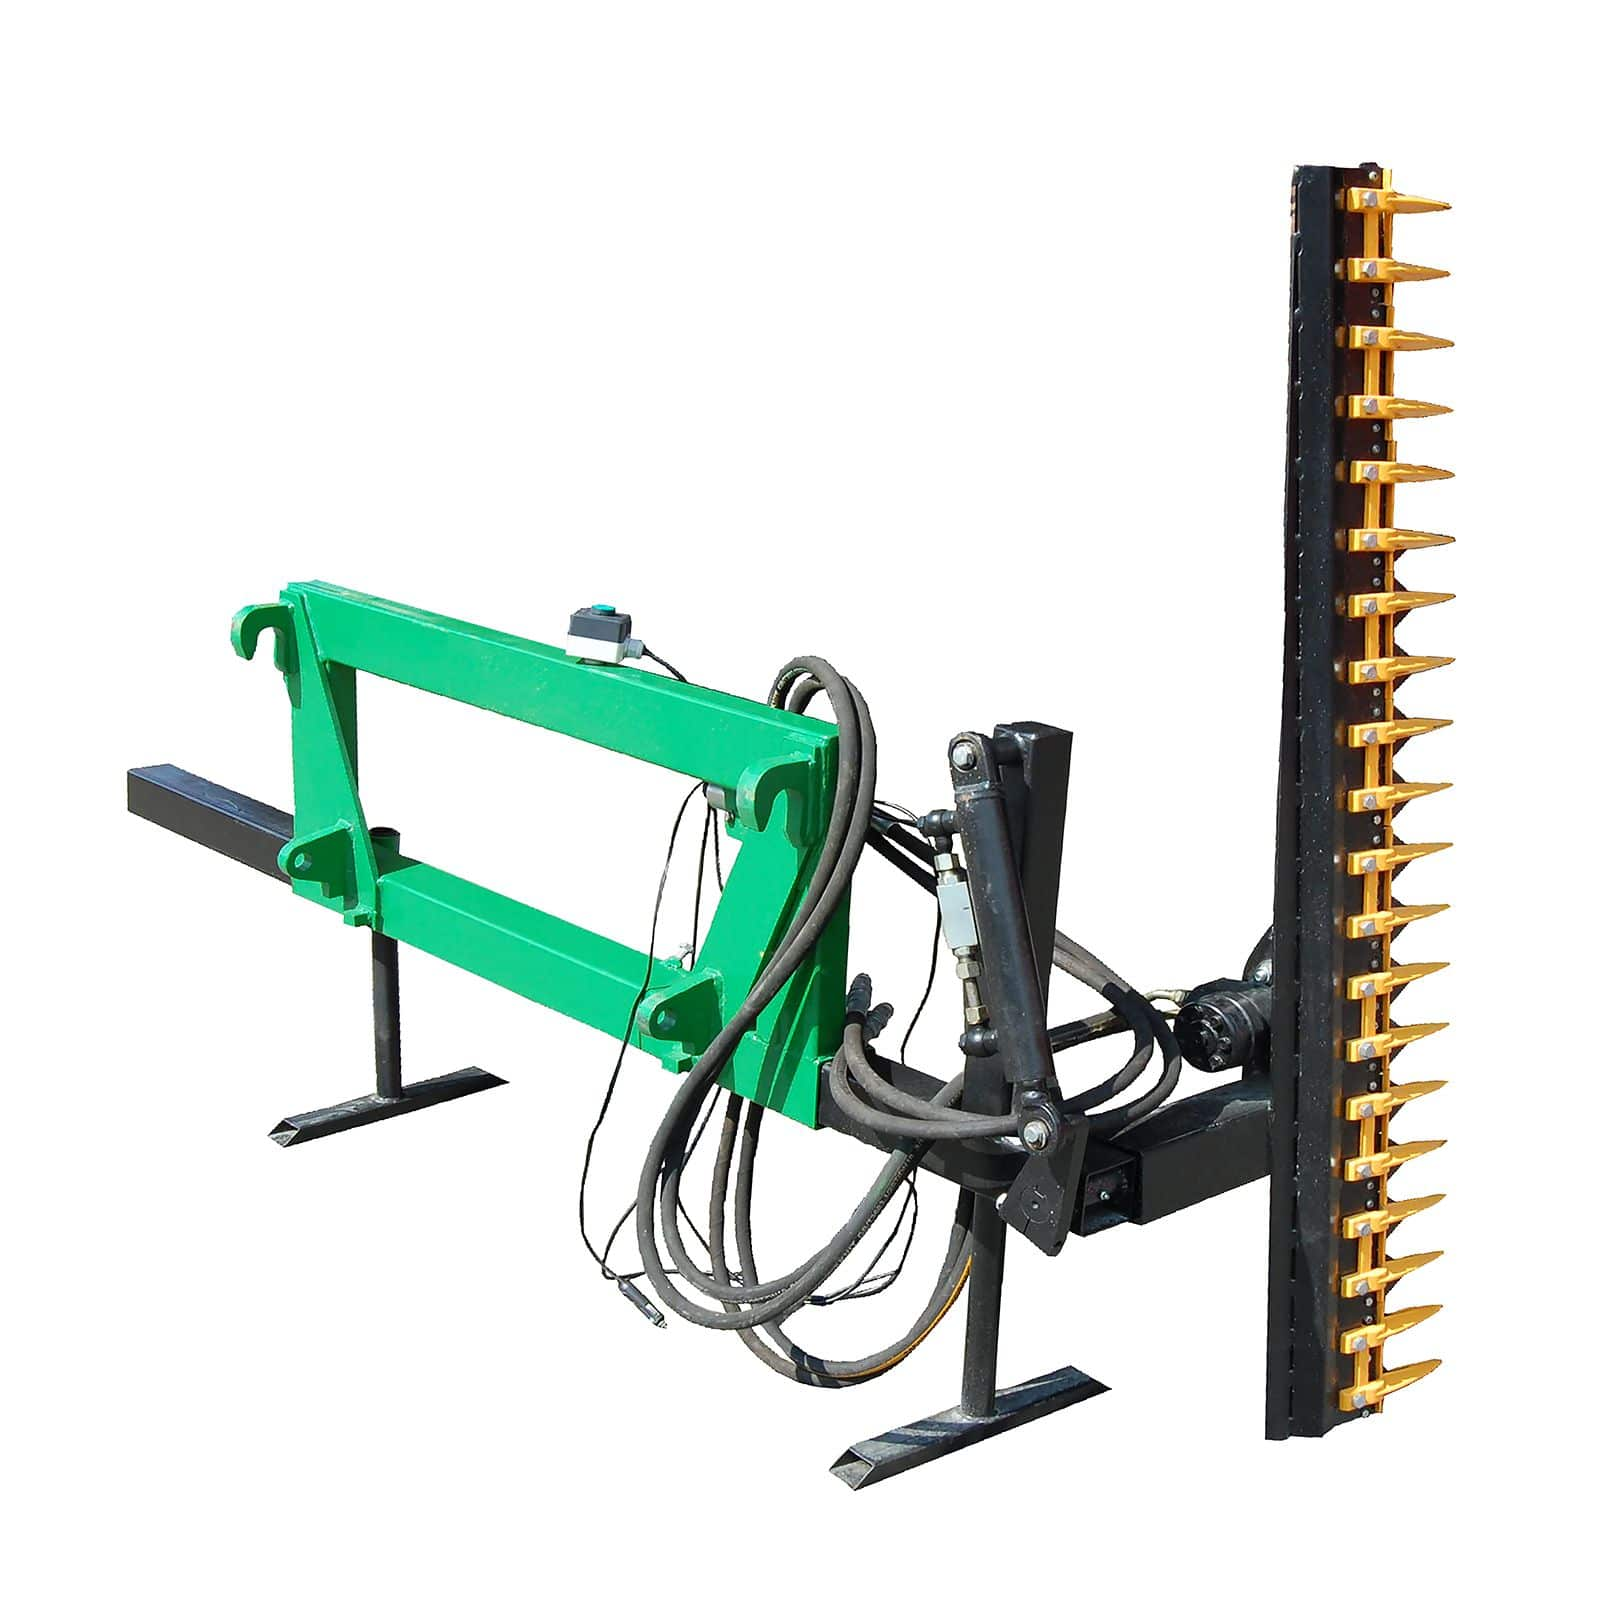 Loader Mounted Hedge CutterLearn More